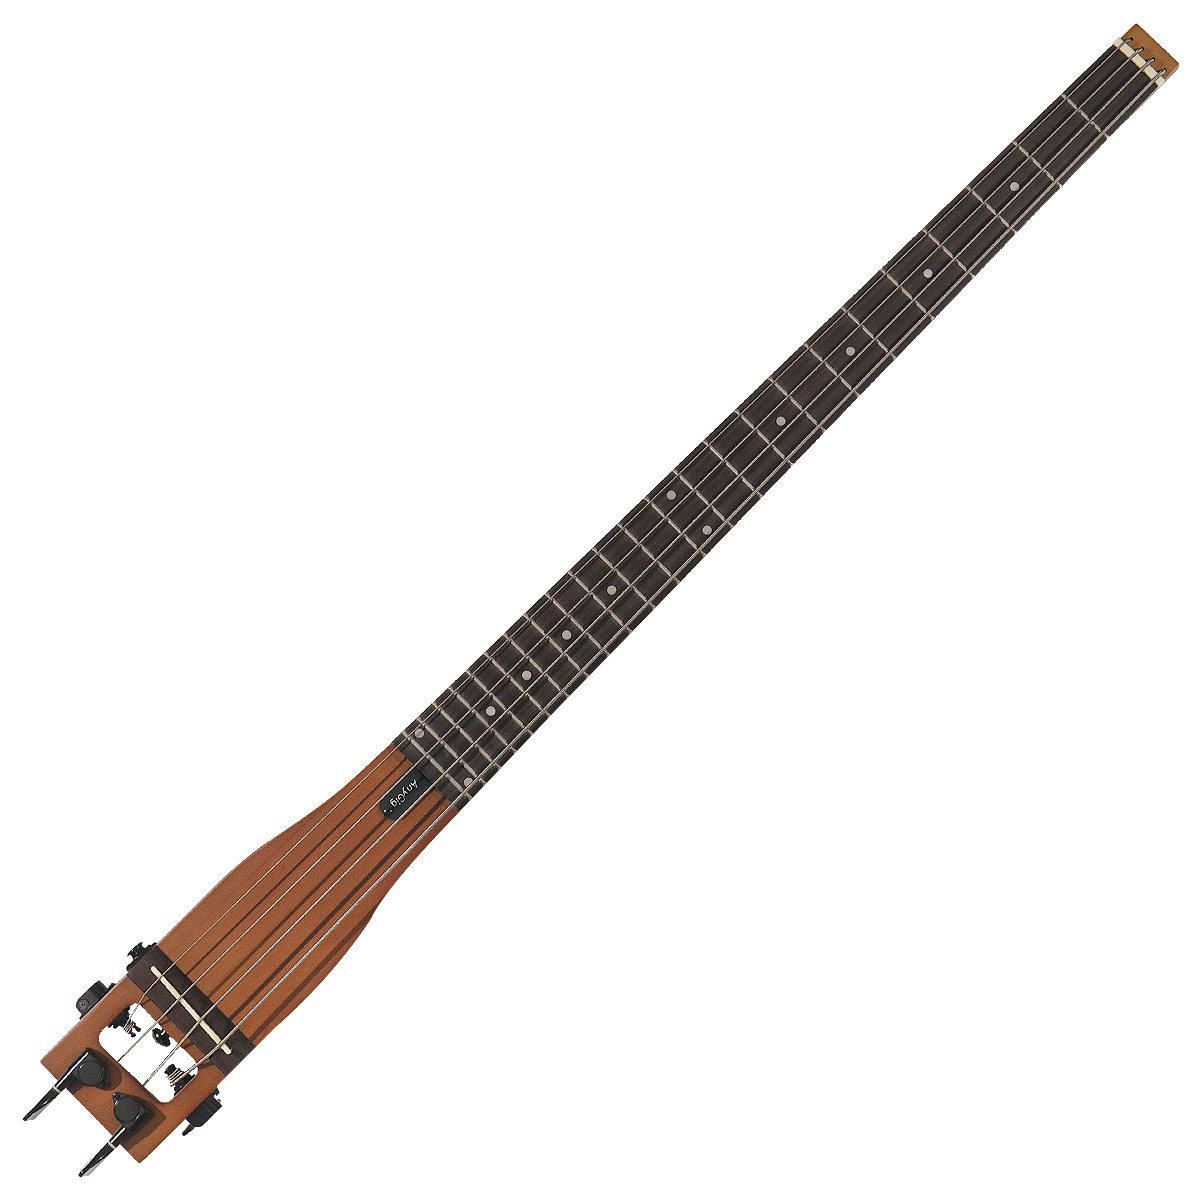 anygig agb 34 39 39 full scale length left hand 4 strings small bass guitar brown 4894666000377 ebay. Black Bedroom Furniture Sets. Home Design Ideas